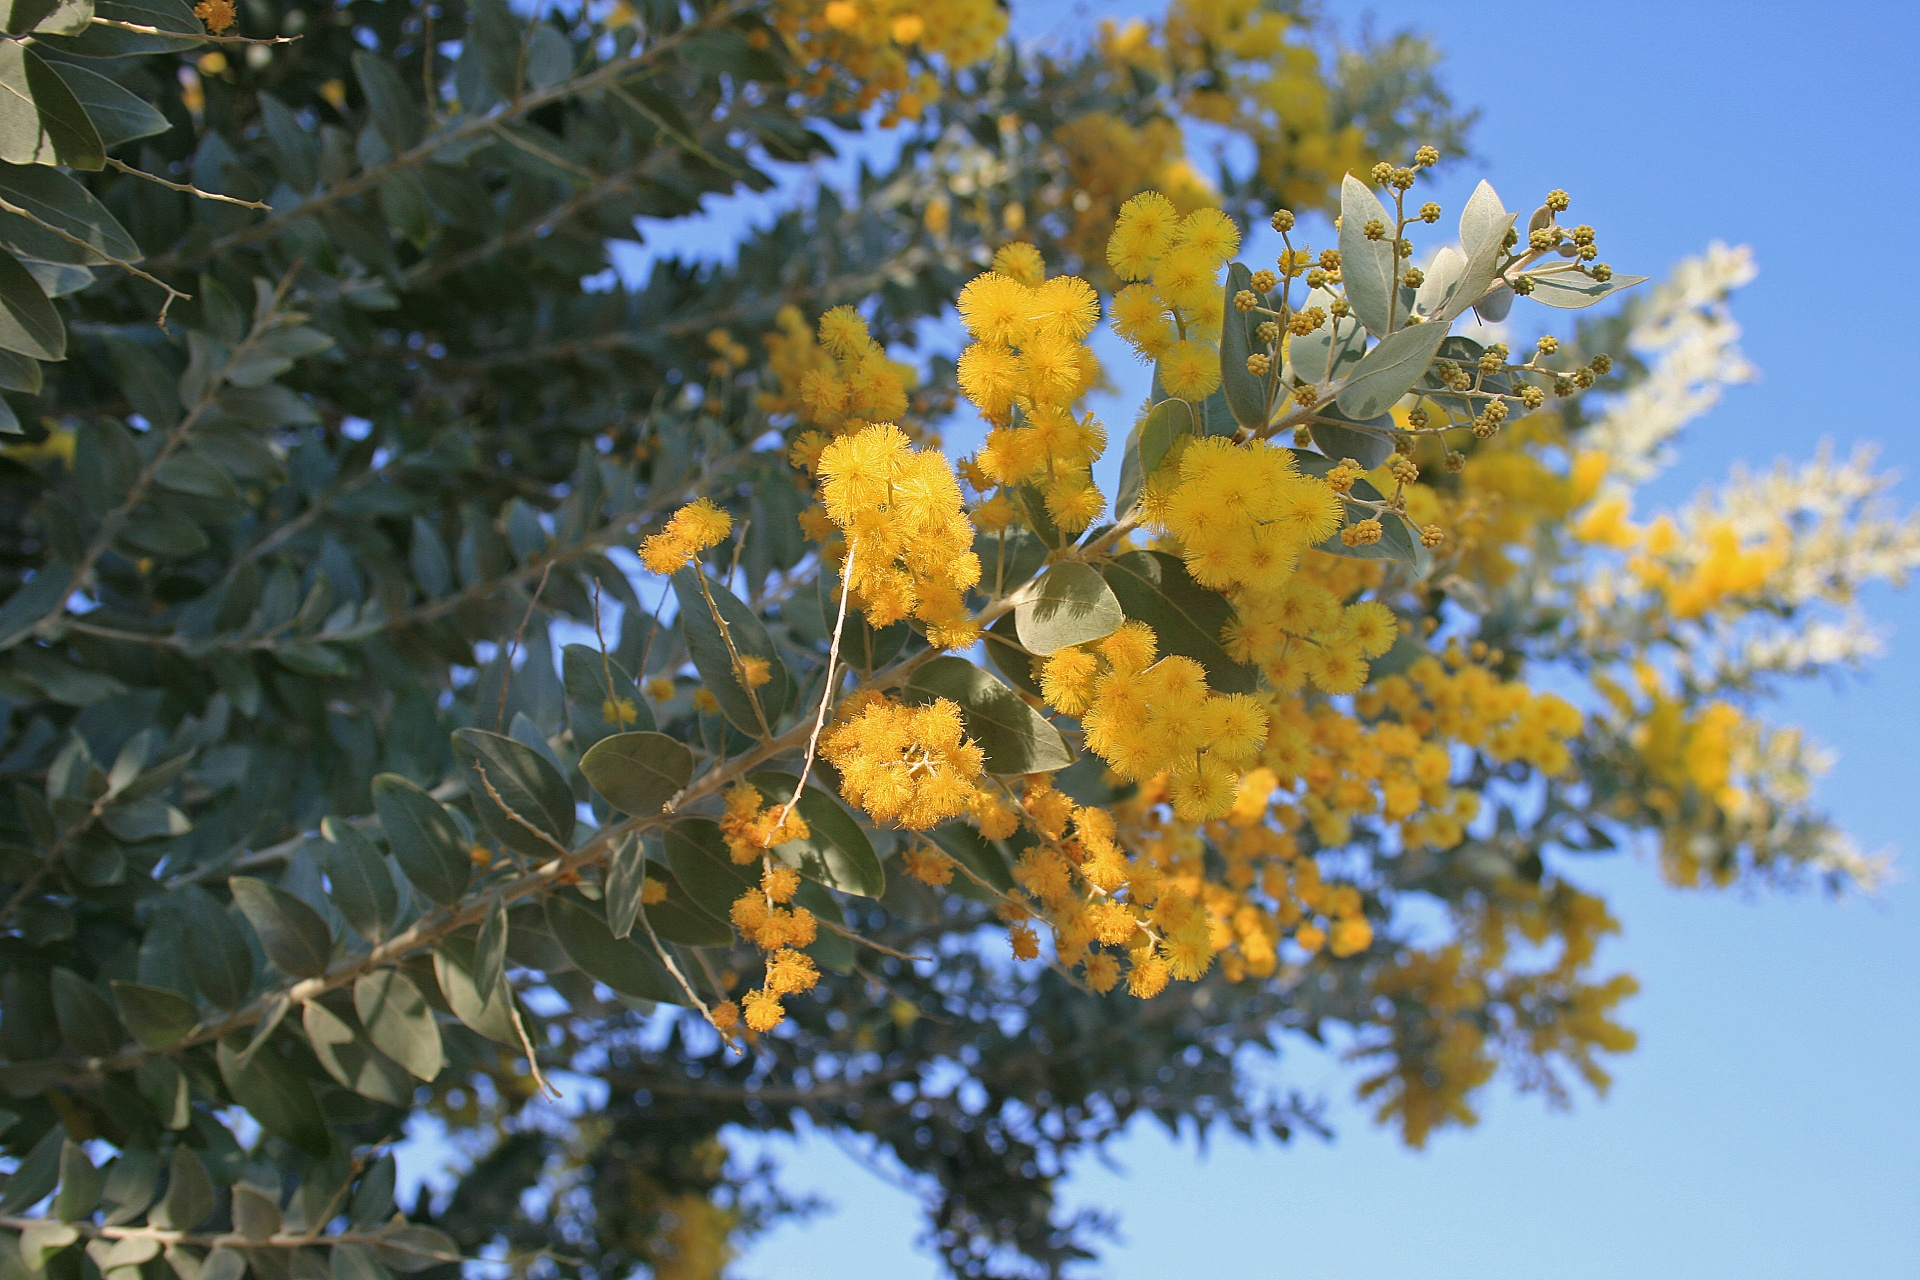 Flowersyellowfluffyacacia Treeyellow Flowers On Acacia Tree